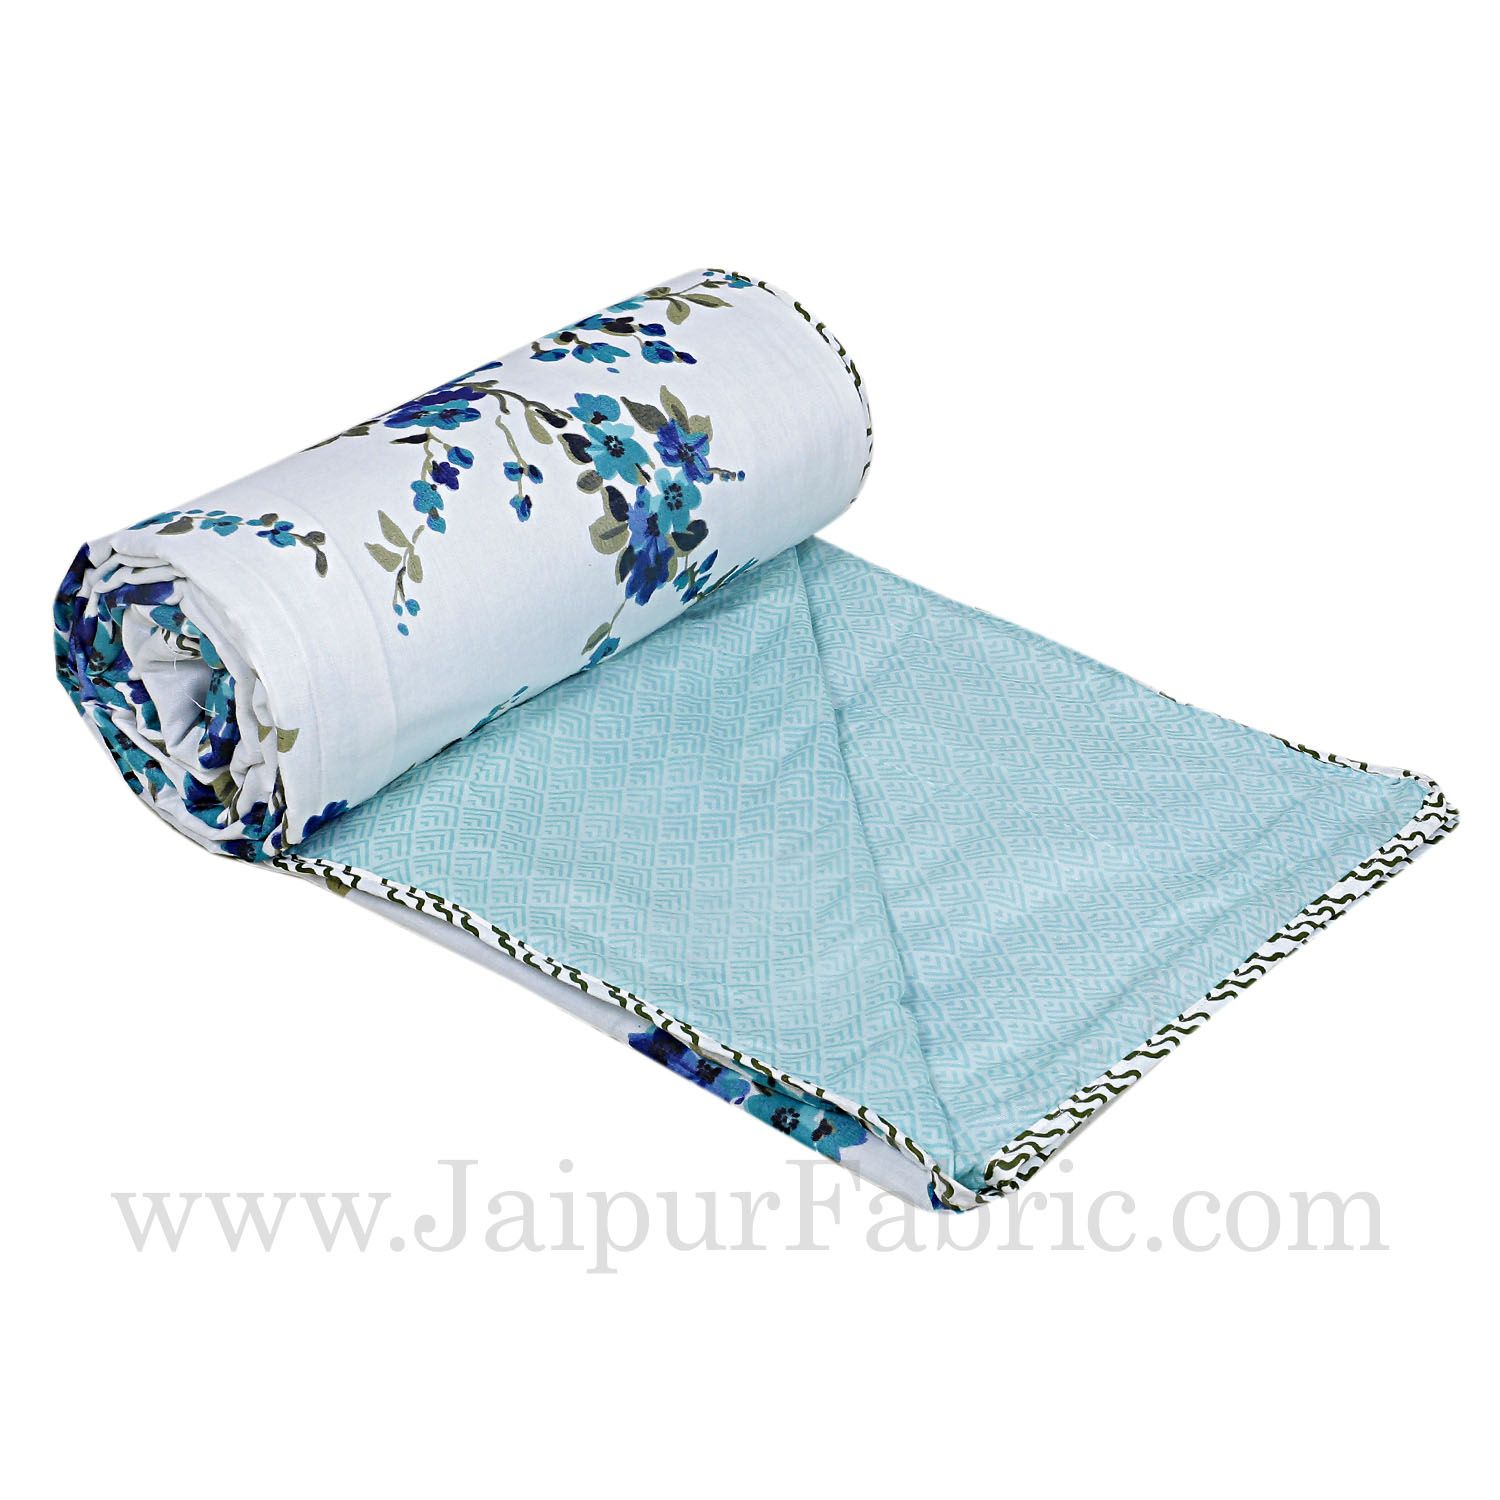 Muslin Cotton Double bed Reversible mulmul Dohar in blue motif floral print